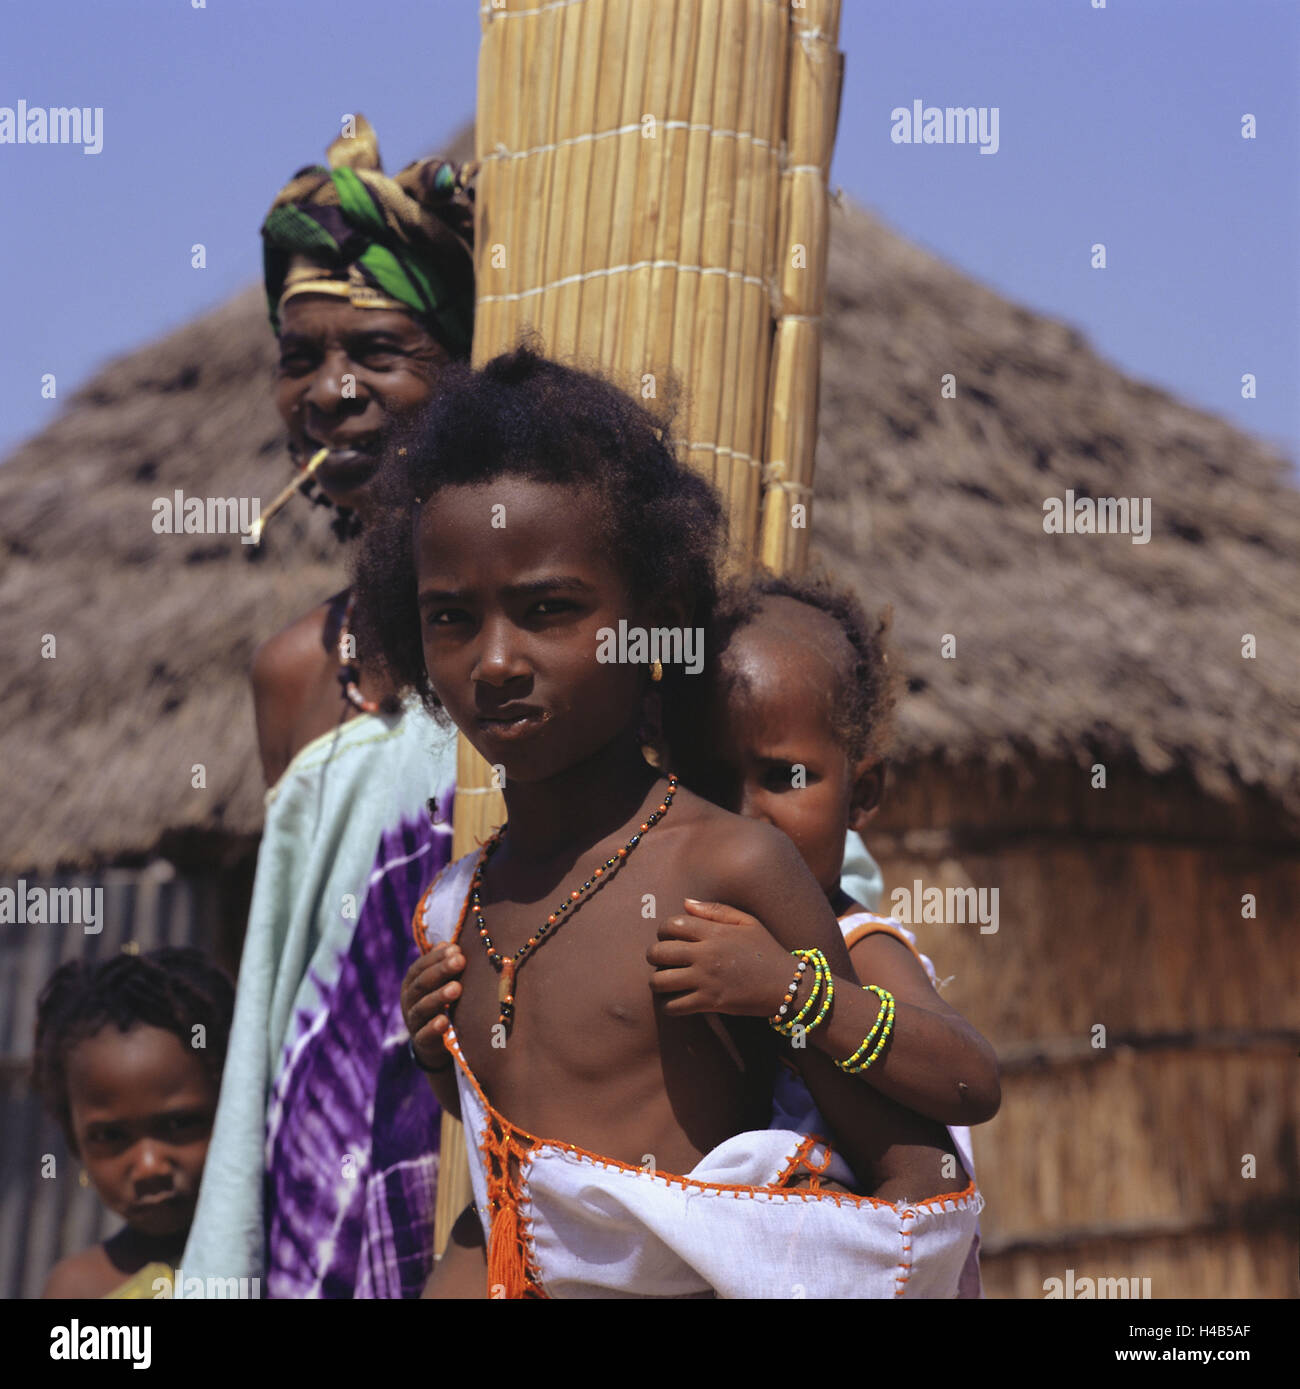 Senegalese Tribe Stock Photos & Senegalese Tribe Stock Images - Alamy